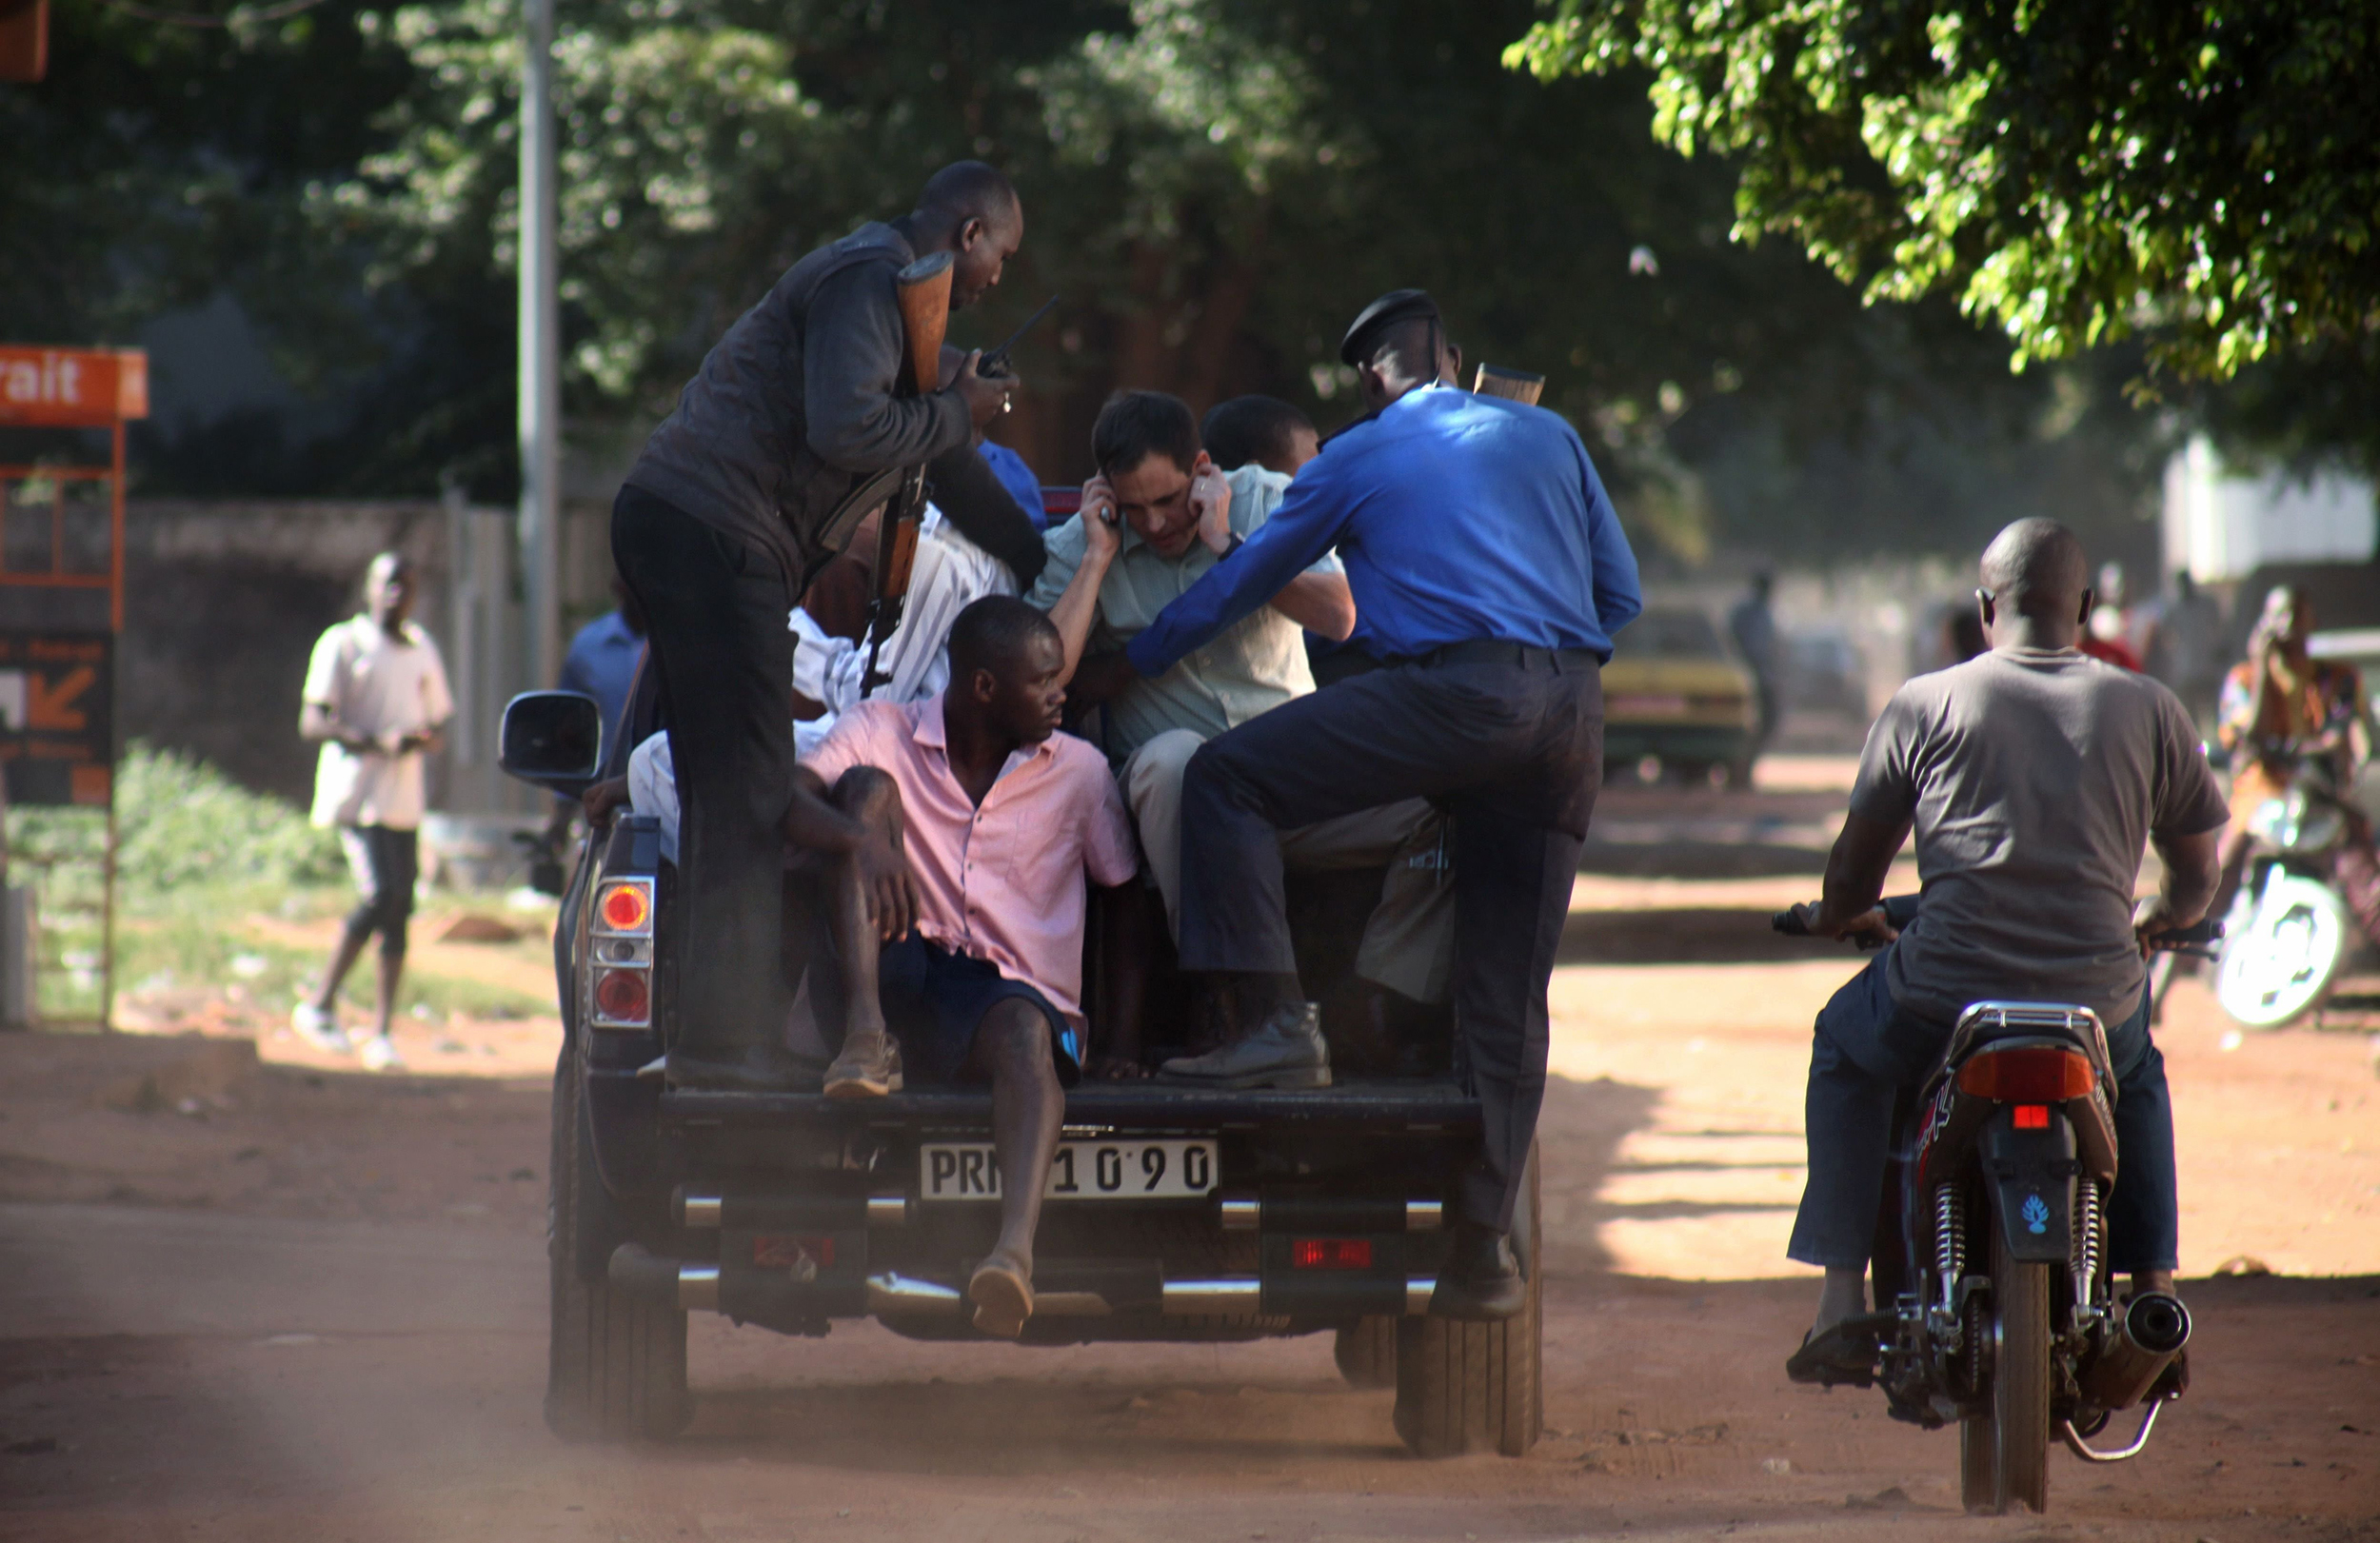 Malian security forces evacuate hostages freed from the Radisson Blu hotel in Bamako, Mali on Nov. 20, 2015.